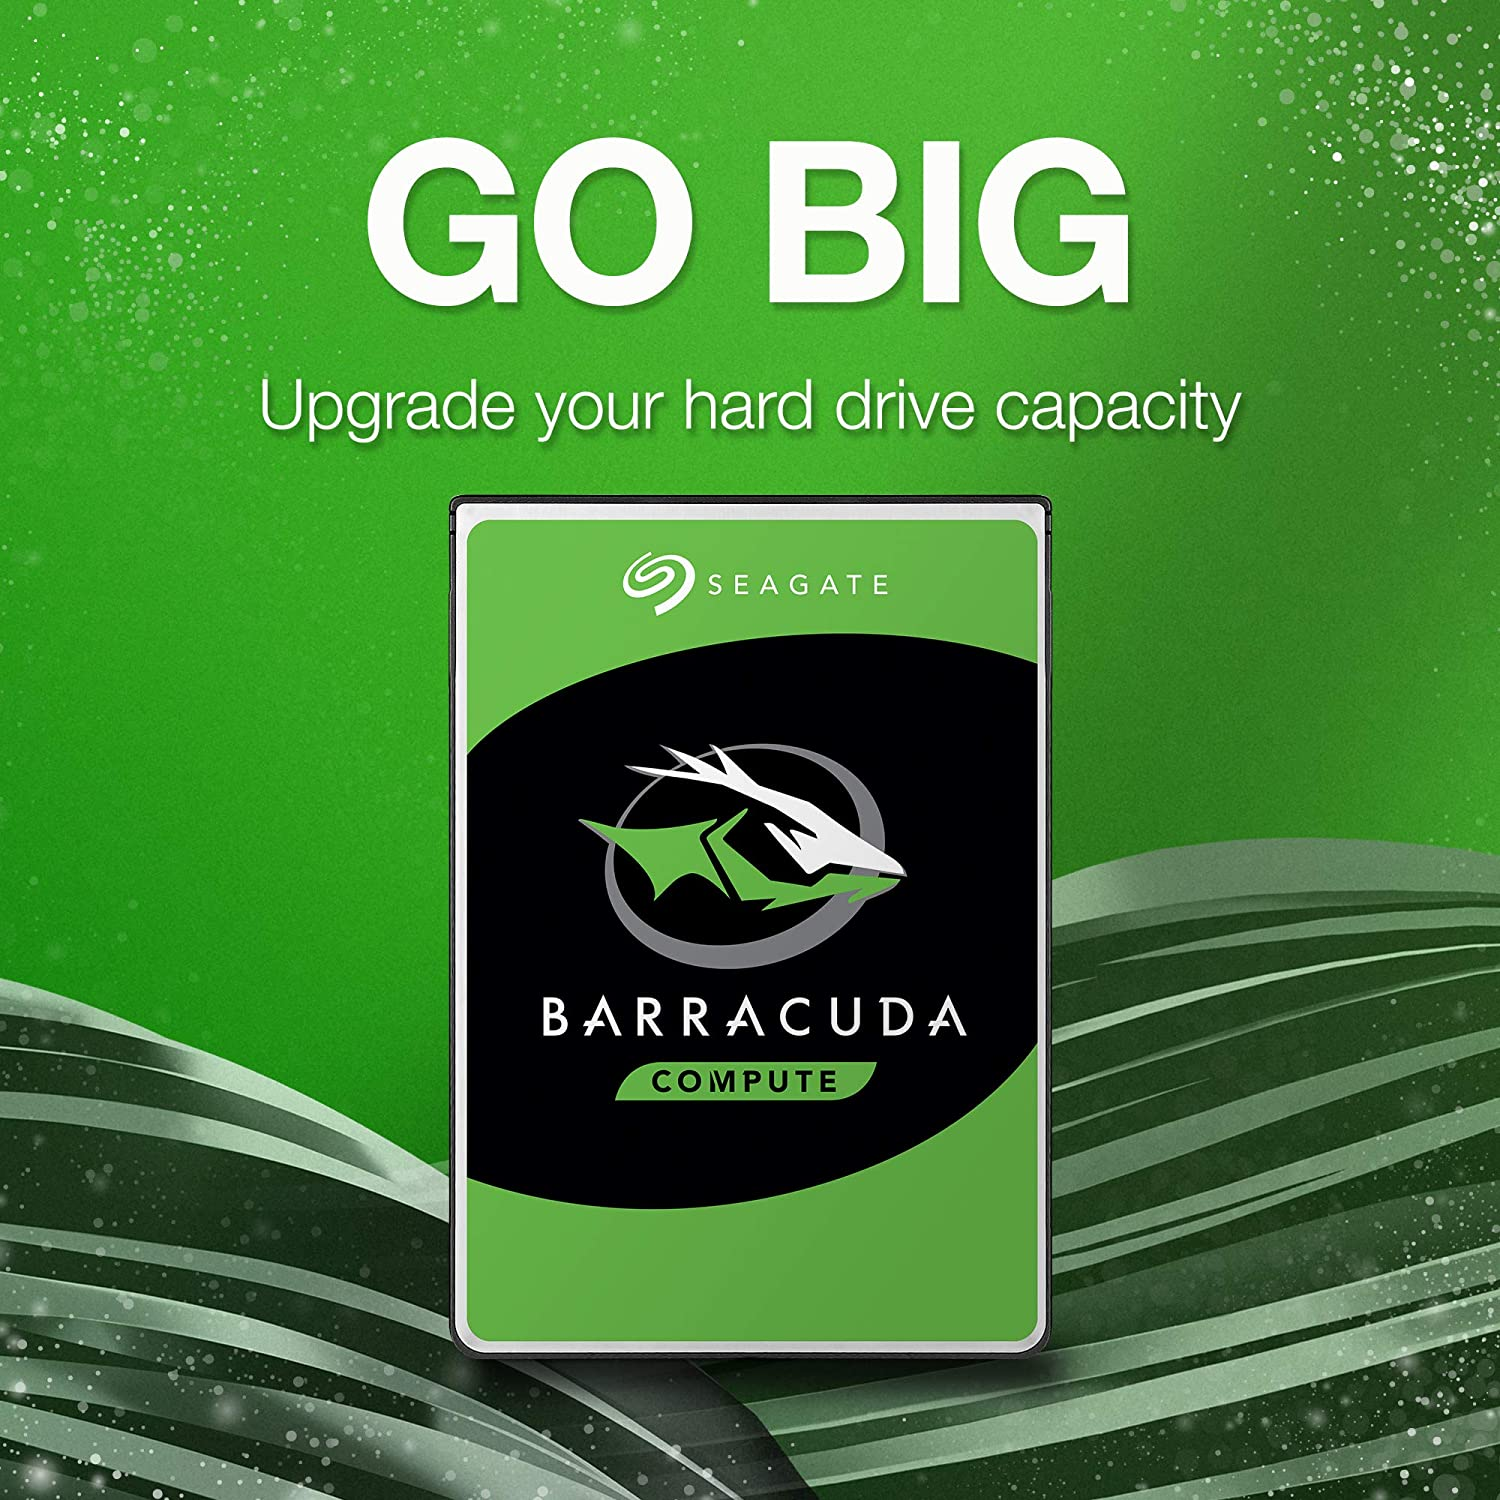 Seagate BarraCuda 3TB Internal Hard Drive HDD – 3.5 Inch SATA 6Gb/s 5400 RPM 256MB Cache for Computer Desktop PC – Frustration-Free Packaging (ST3000DM007)